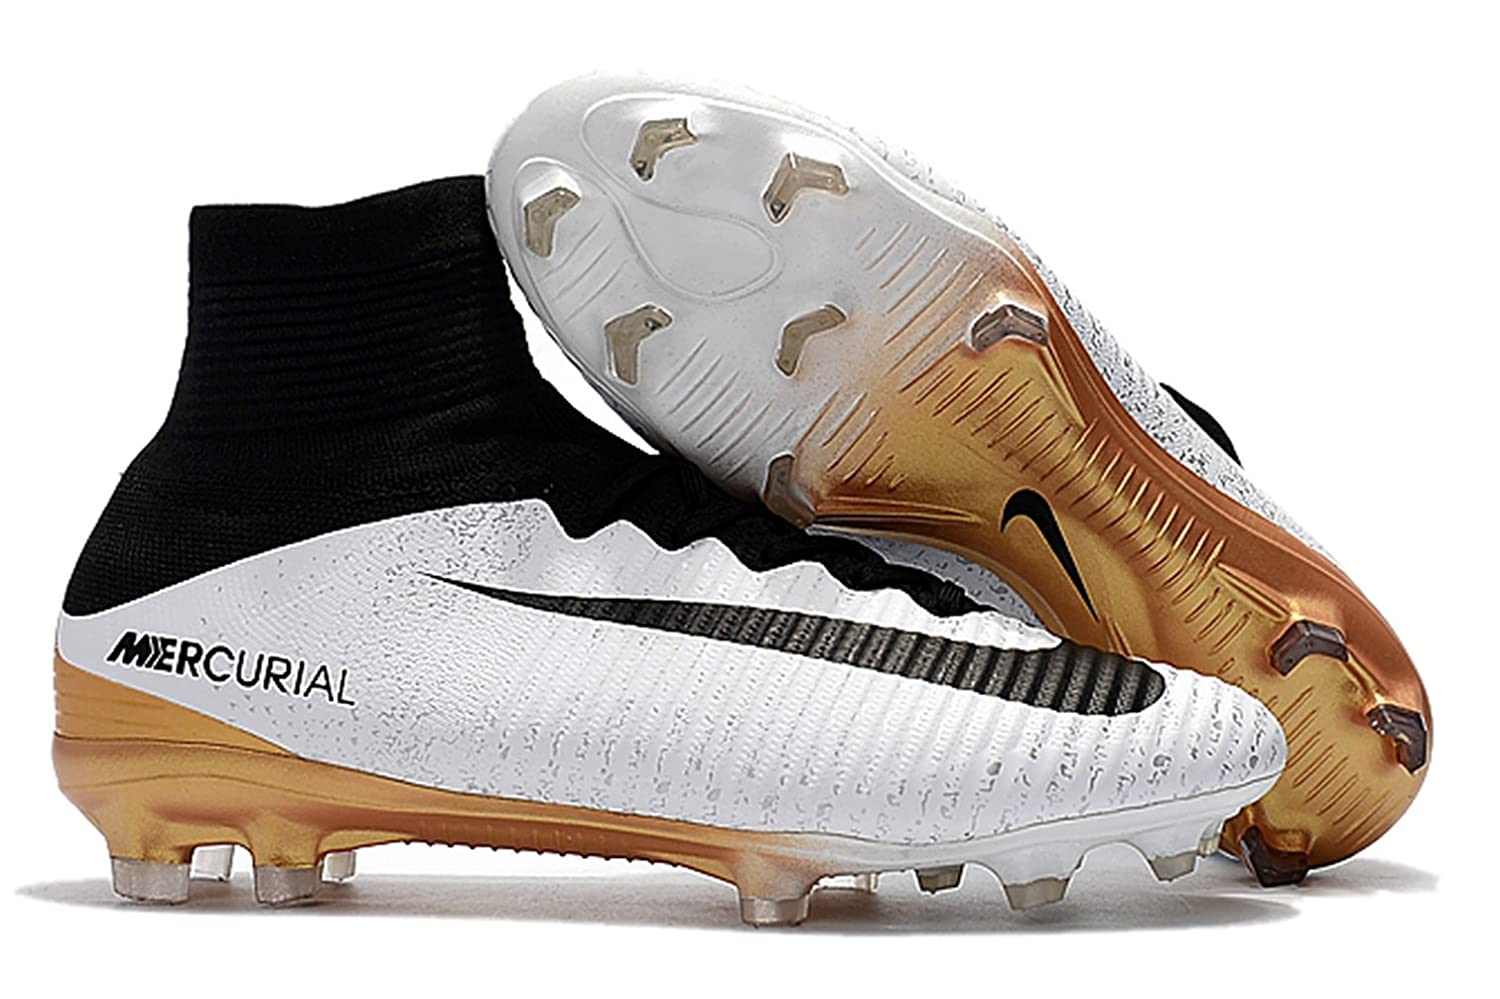 01cd8c7fa95 ... Cleats Platinum Black Ghost Green Men s High Ankle Soccer Shoes Nike  Mercurial Superfly V FG White Black Gold (US ...